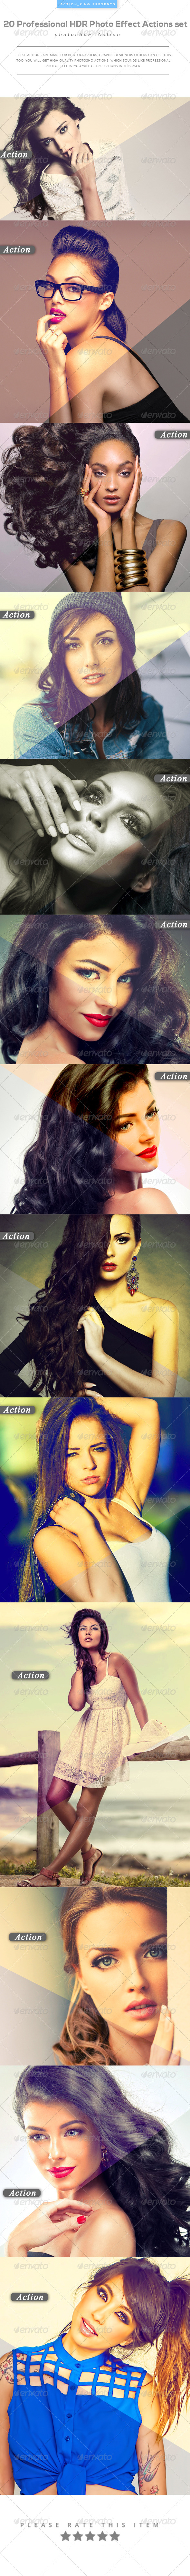 GraphicRiver 20 Professional HDR Photo Effect Actions set 8226020